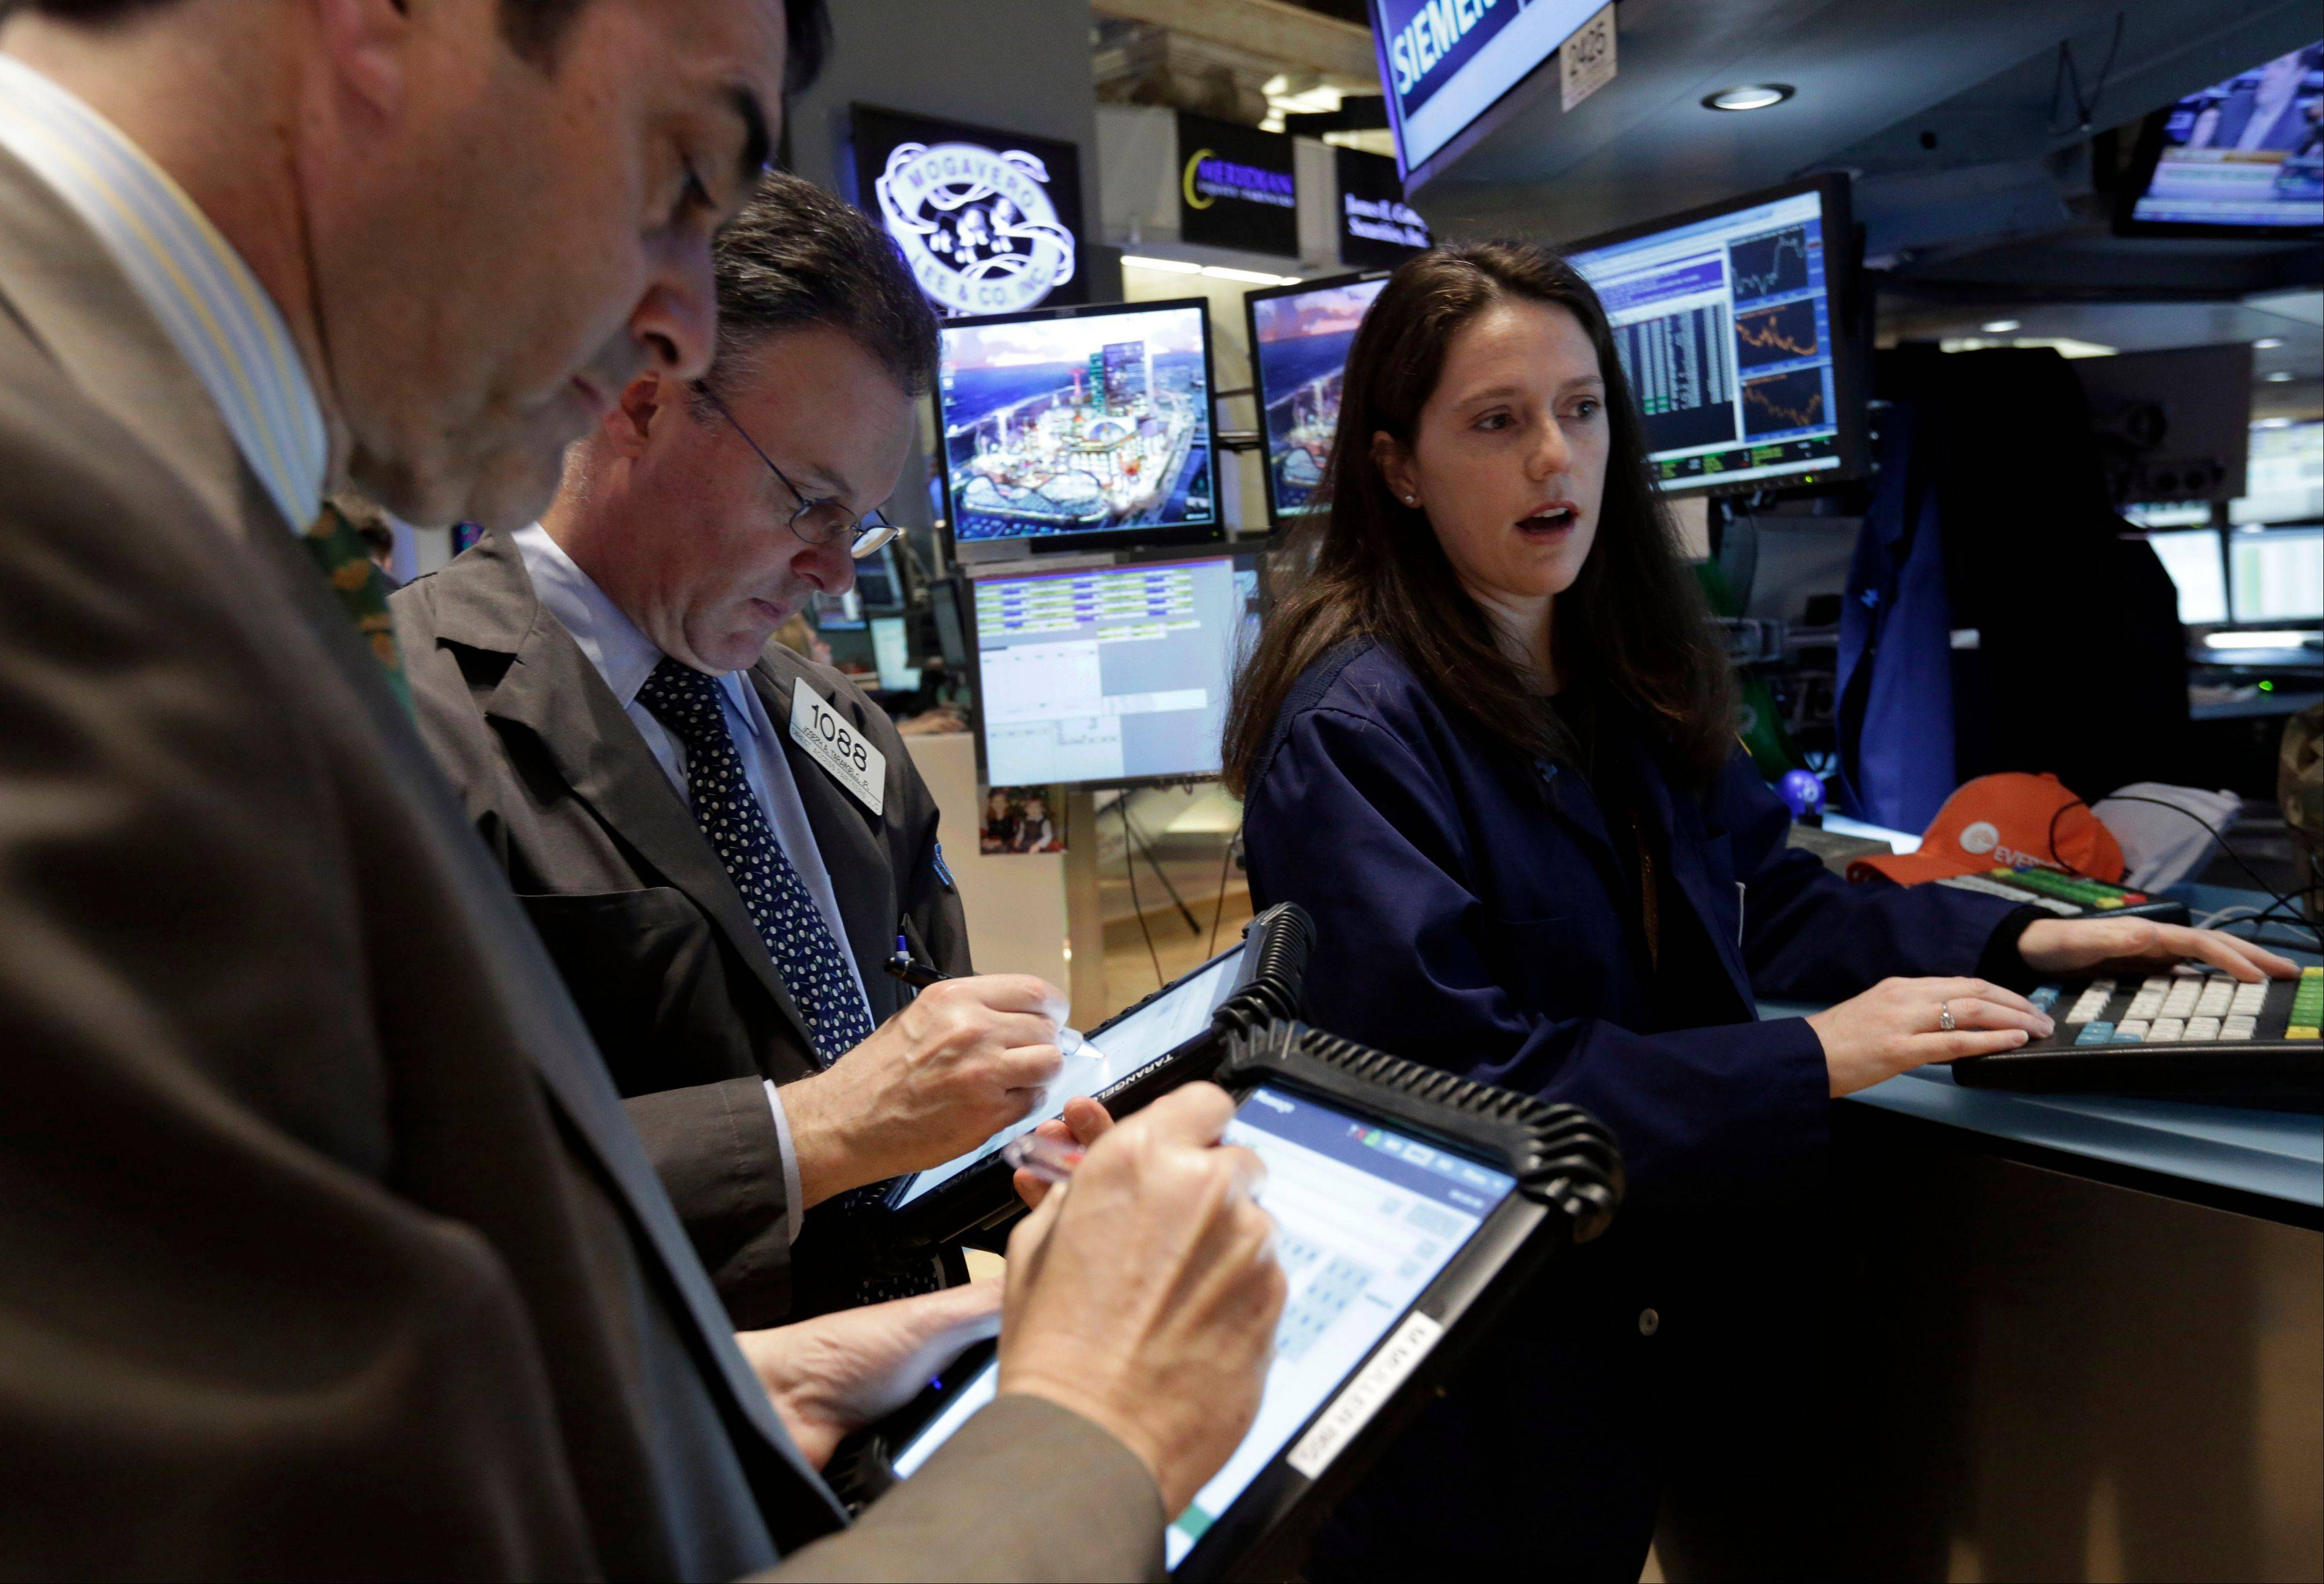 U.S. stocks rose, sending the Standard & Poor�s 500 Index to its eighth record high in the past nine sessions, on increased optimism over growth in the world�s largest economy.